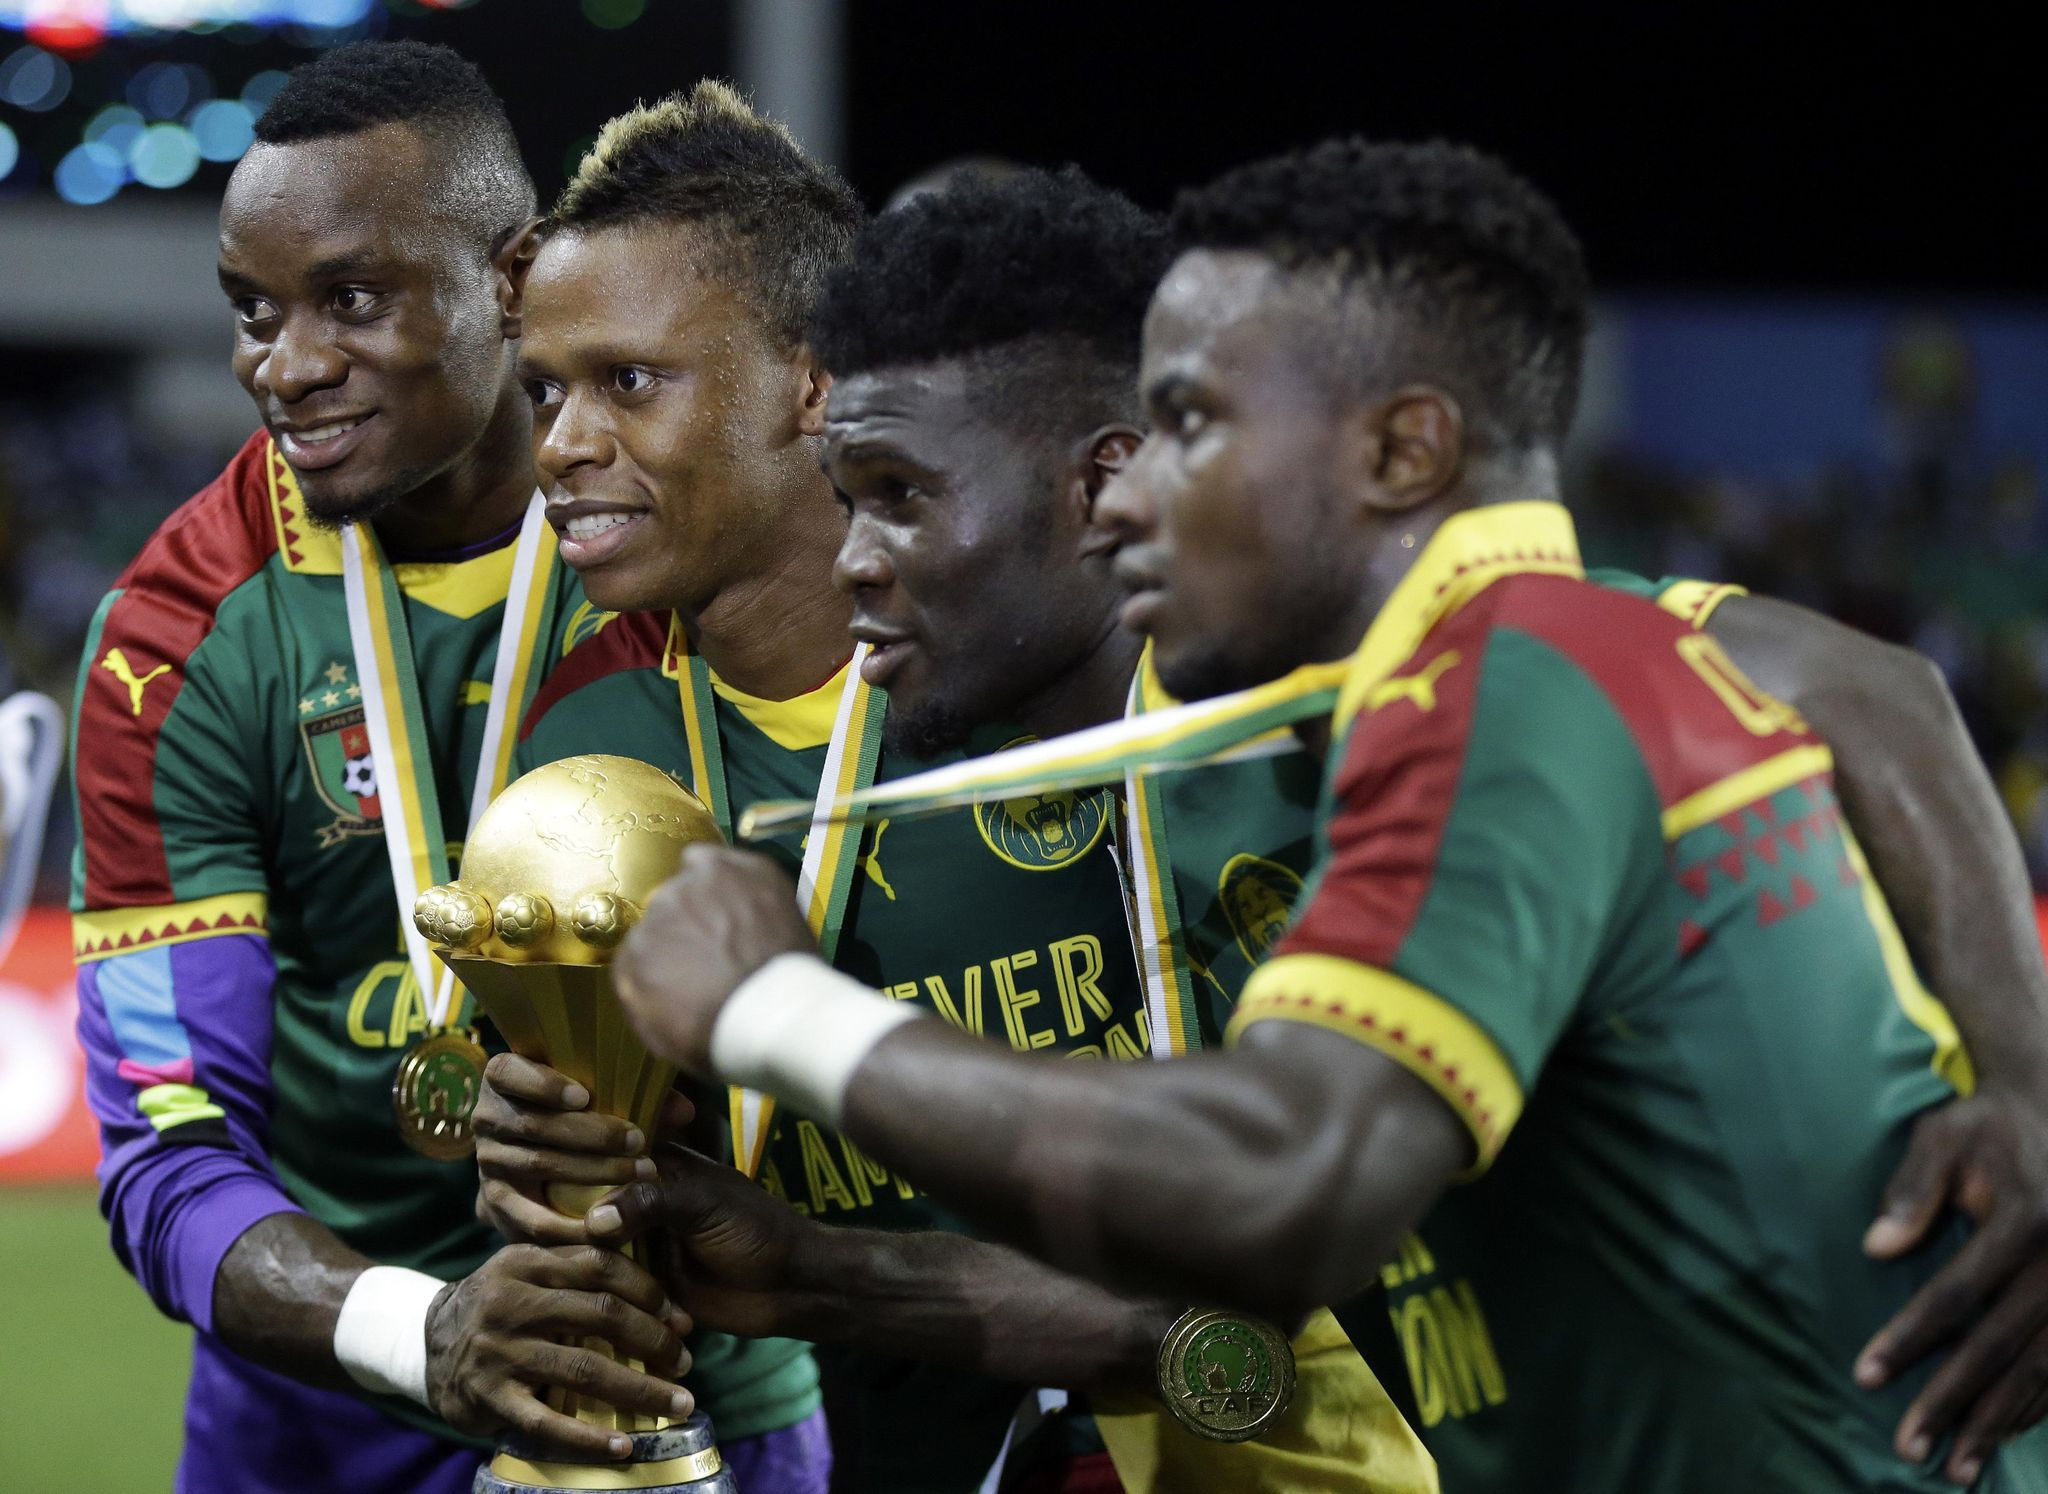 African_cup-cameroon_stripped_soccer_74287_s2048x1494